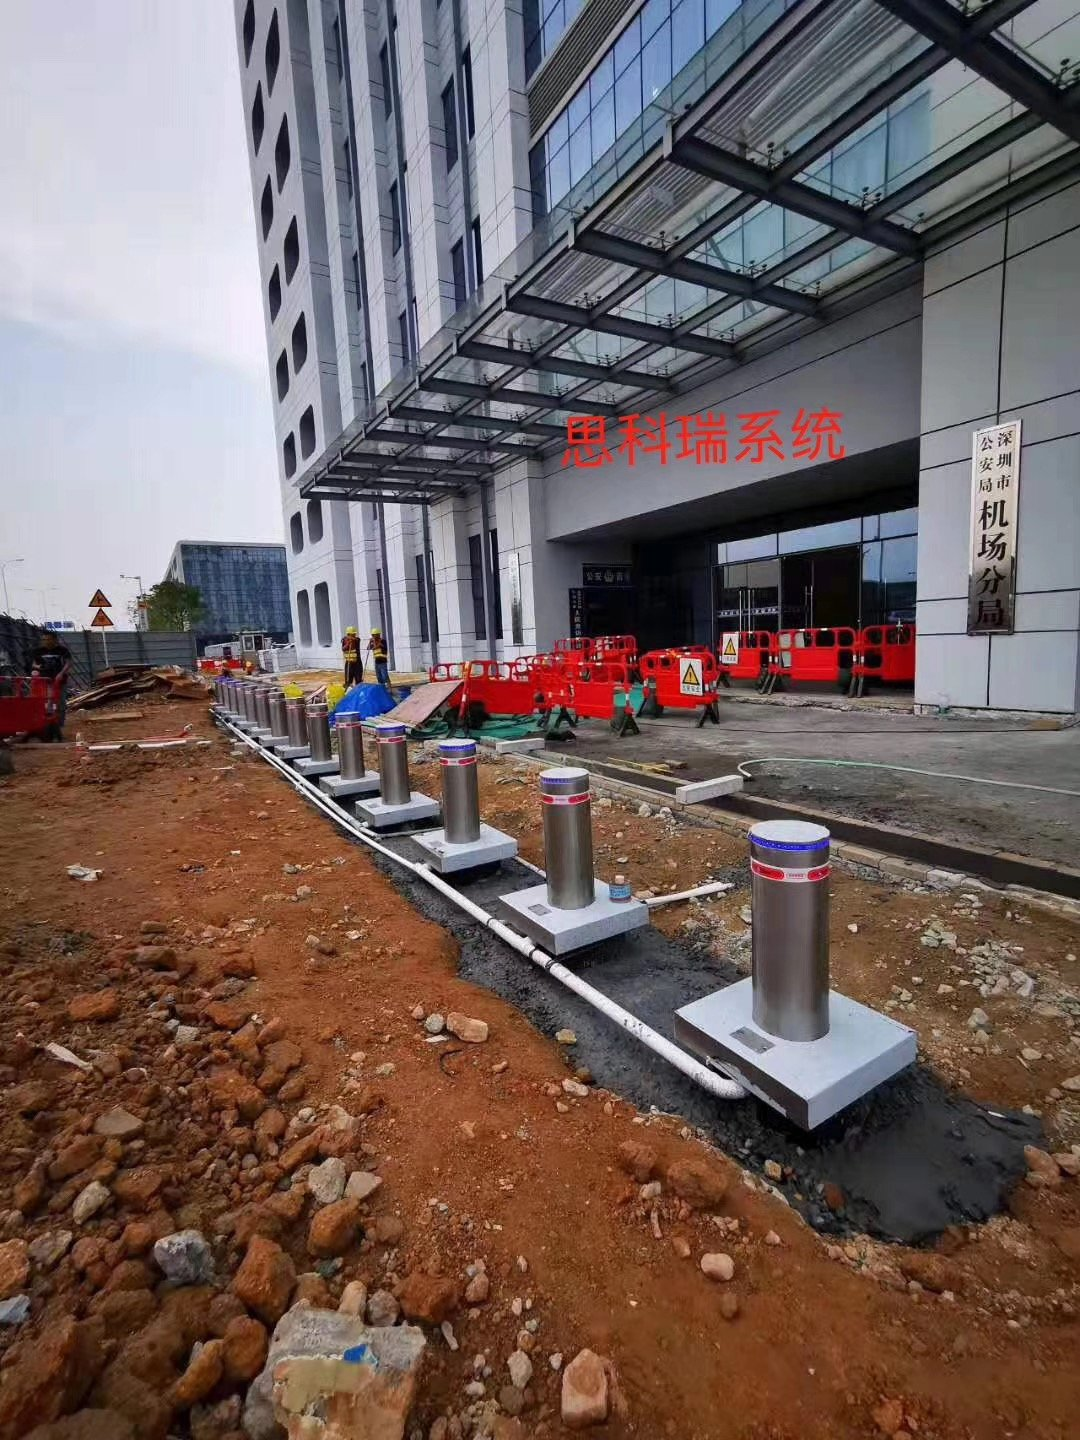 automatic bollards project